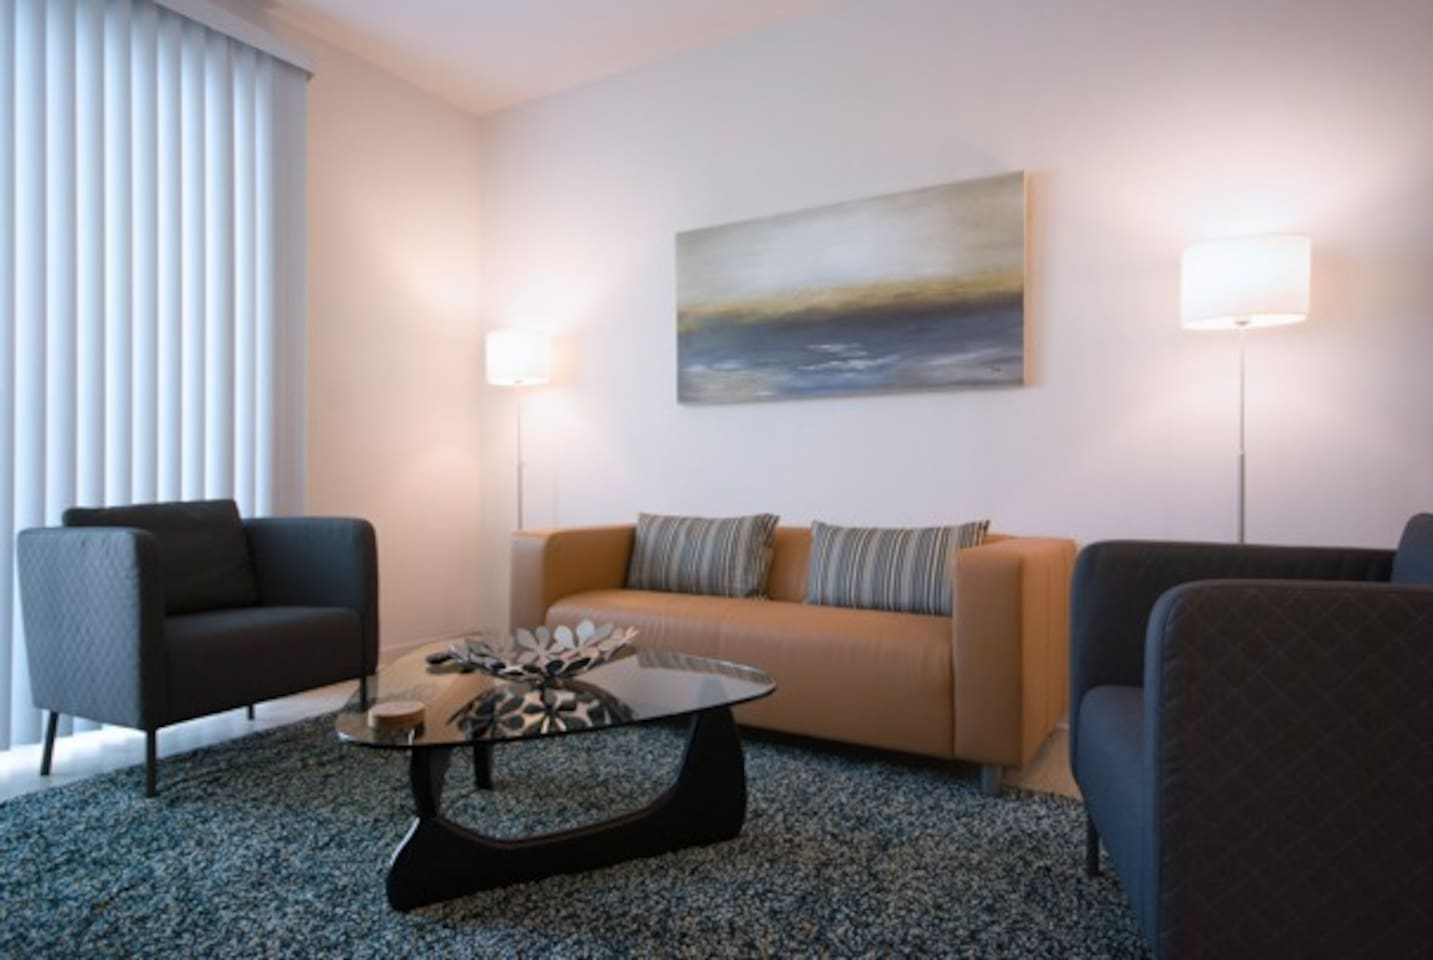 Spectacular Spectrum Suites - Luxury One Bedroom Furnished Apartment - Modern Interior Design